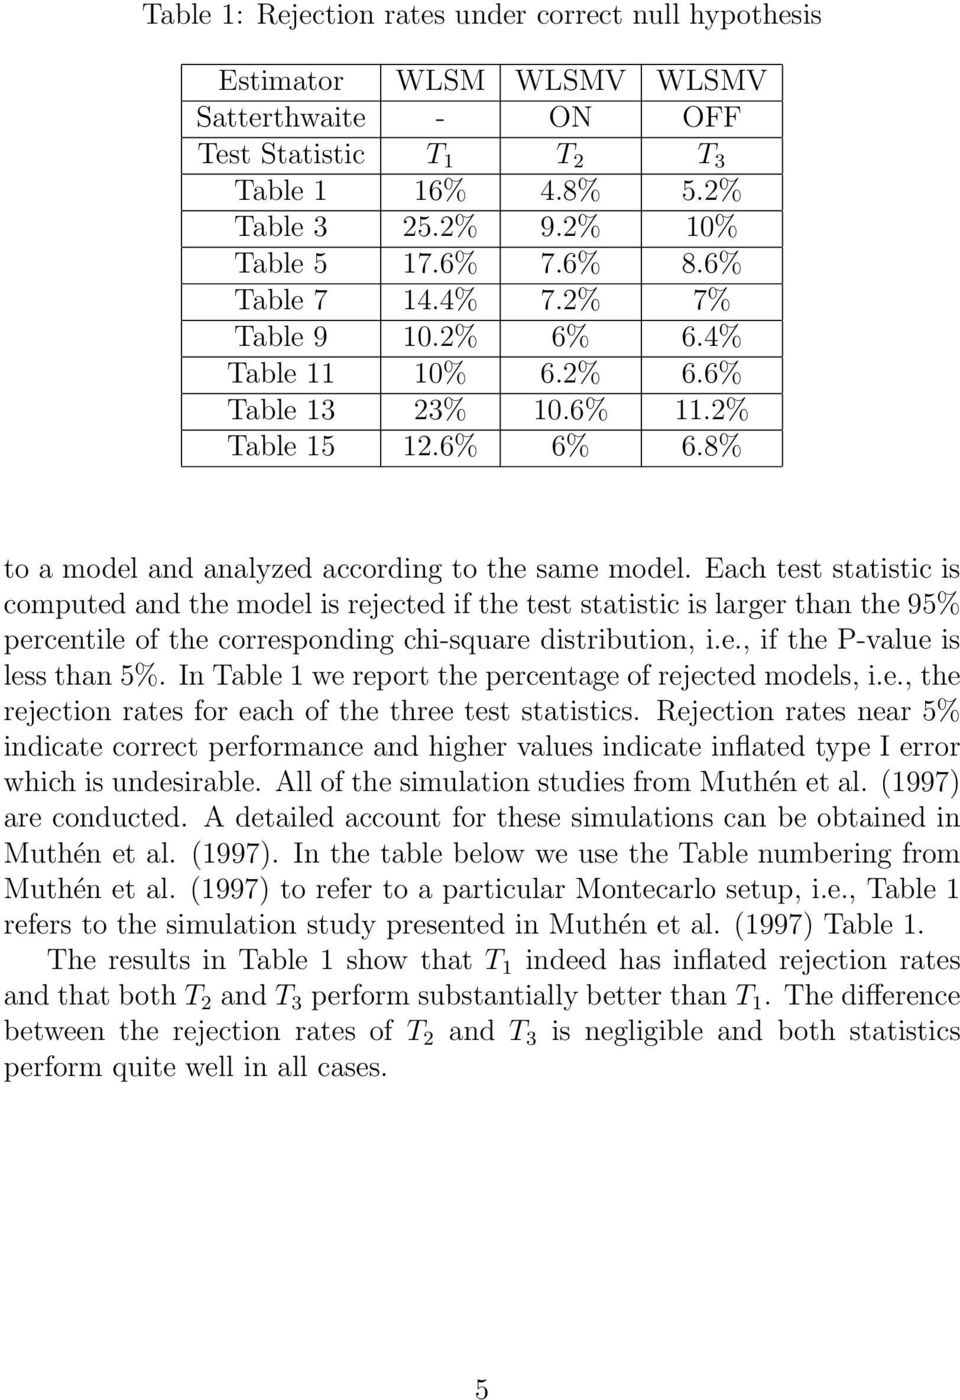 Each test statistic is computed and the model is rejected if the test statistic is larger than the 95% percentile of the corresponding chi-square distribution, i.e., if the P-value is less than 5%.